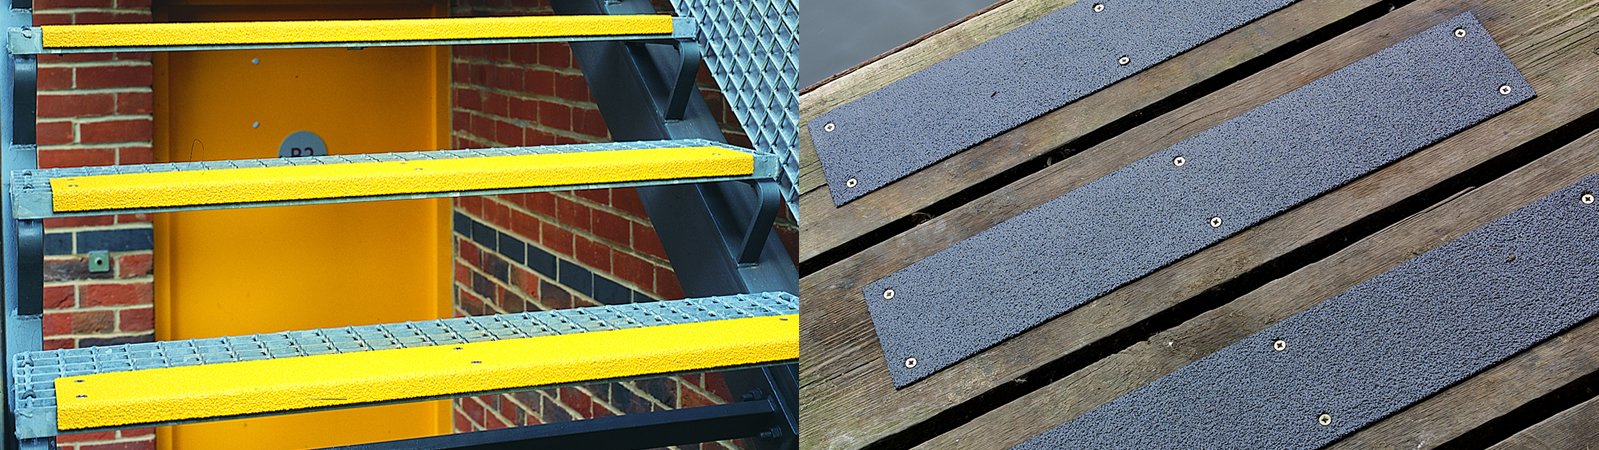 TreadSafe® Stainless Steel Treads